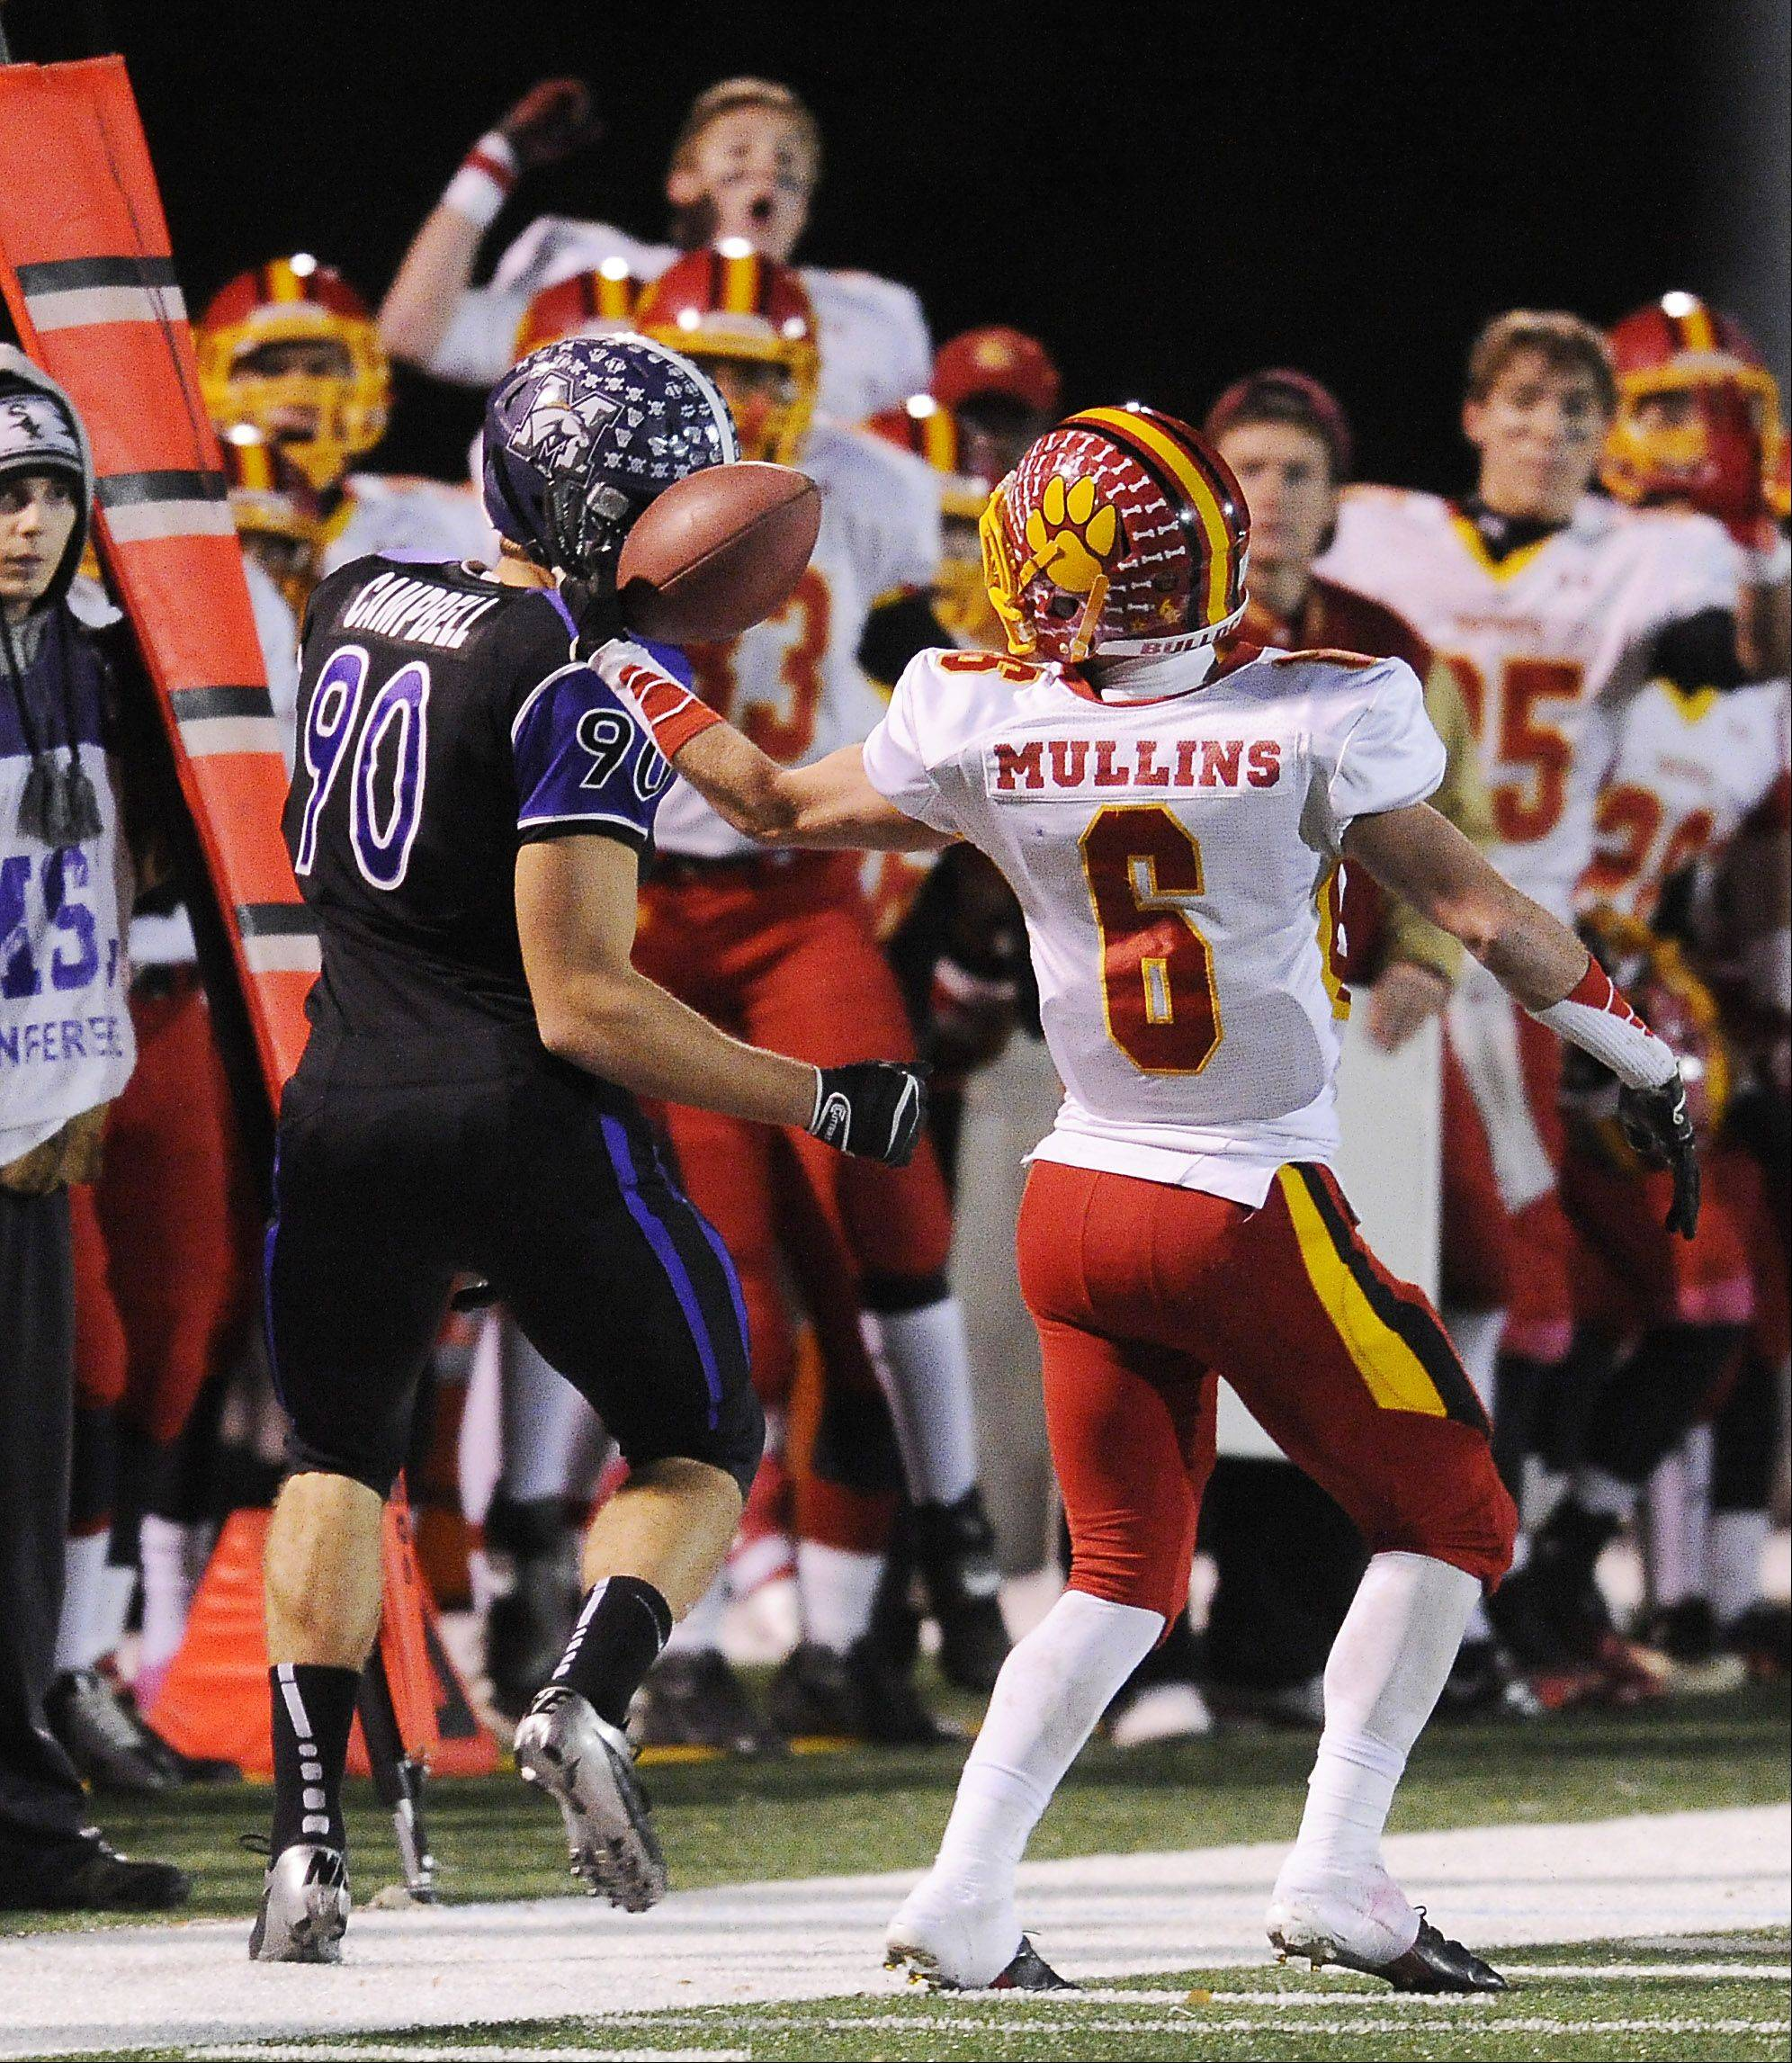 Batavia's Rouke Mullins takes the ball away from Rolling Meadows' Matt Campbell in the second quarter.